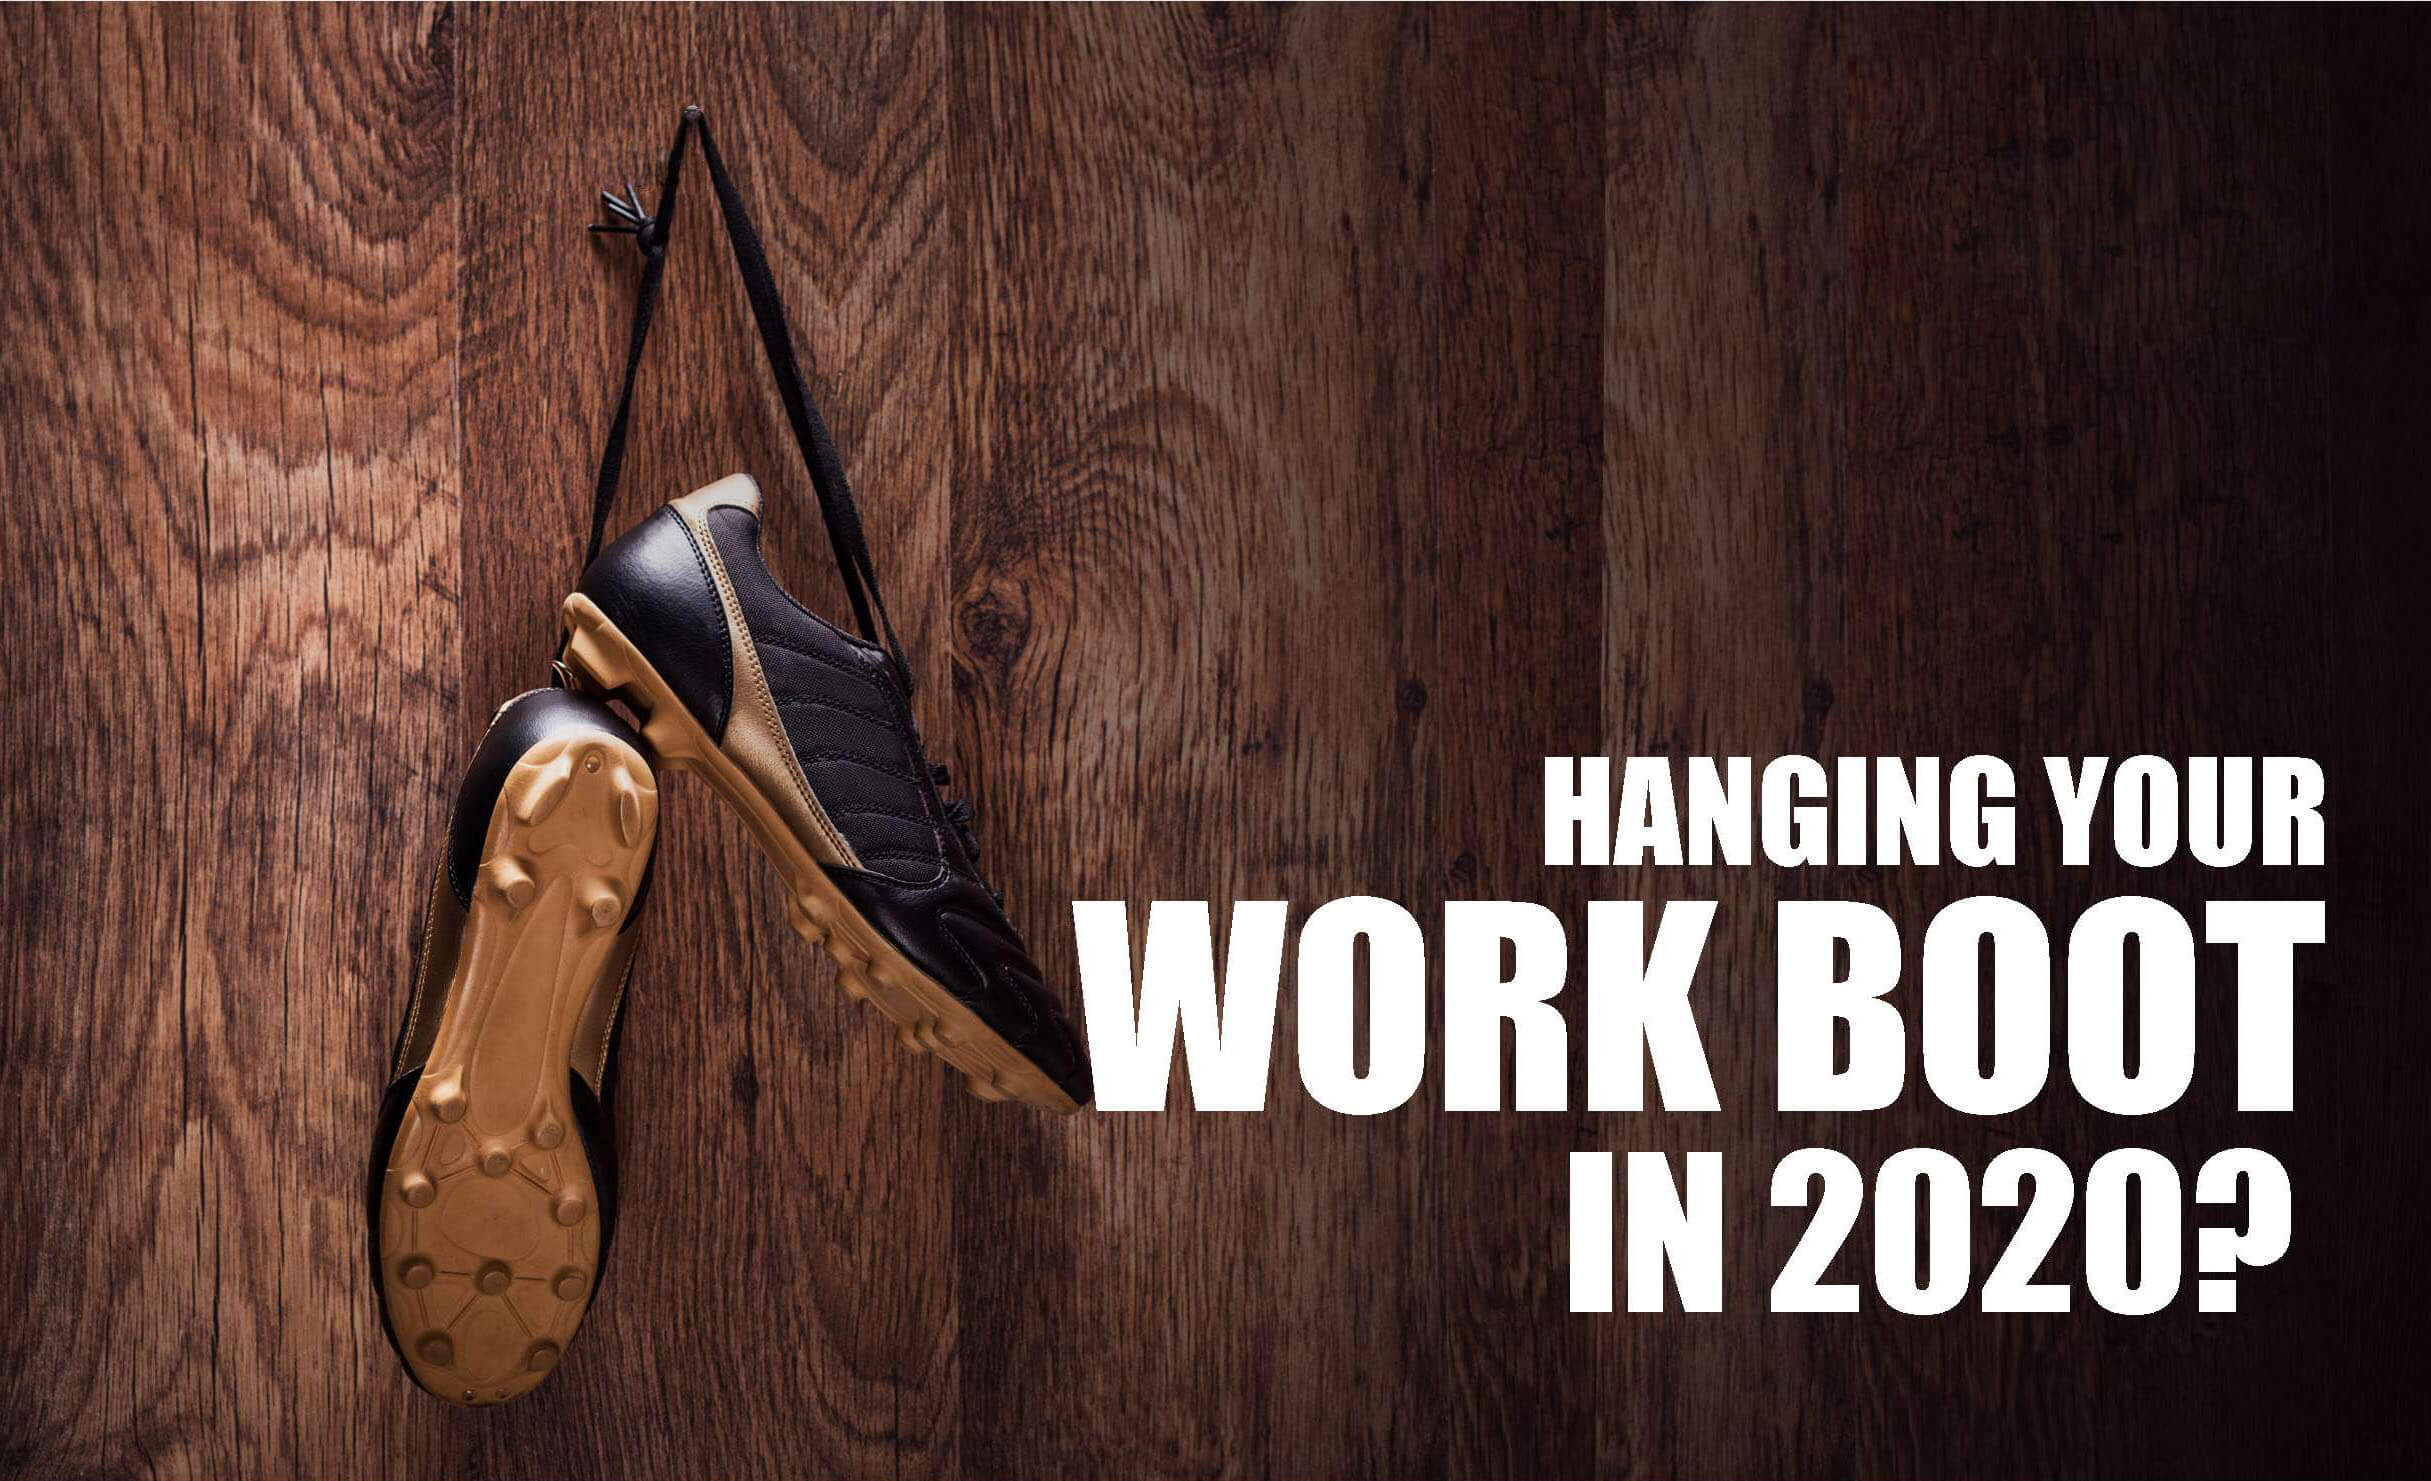 Hanging your work boot in 2020?